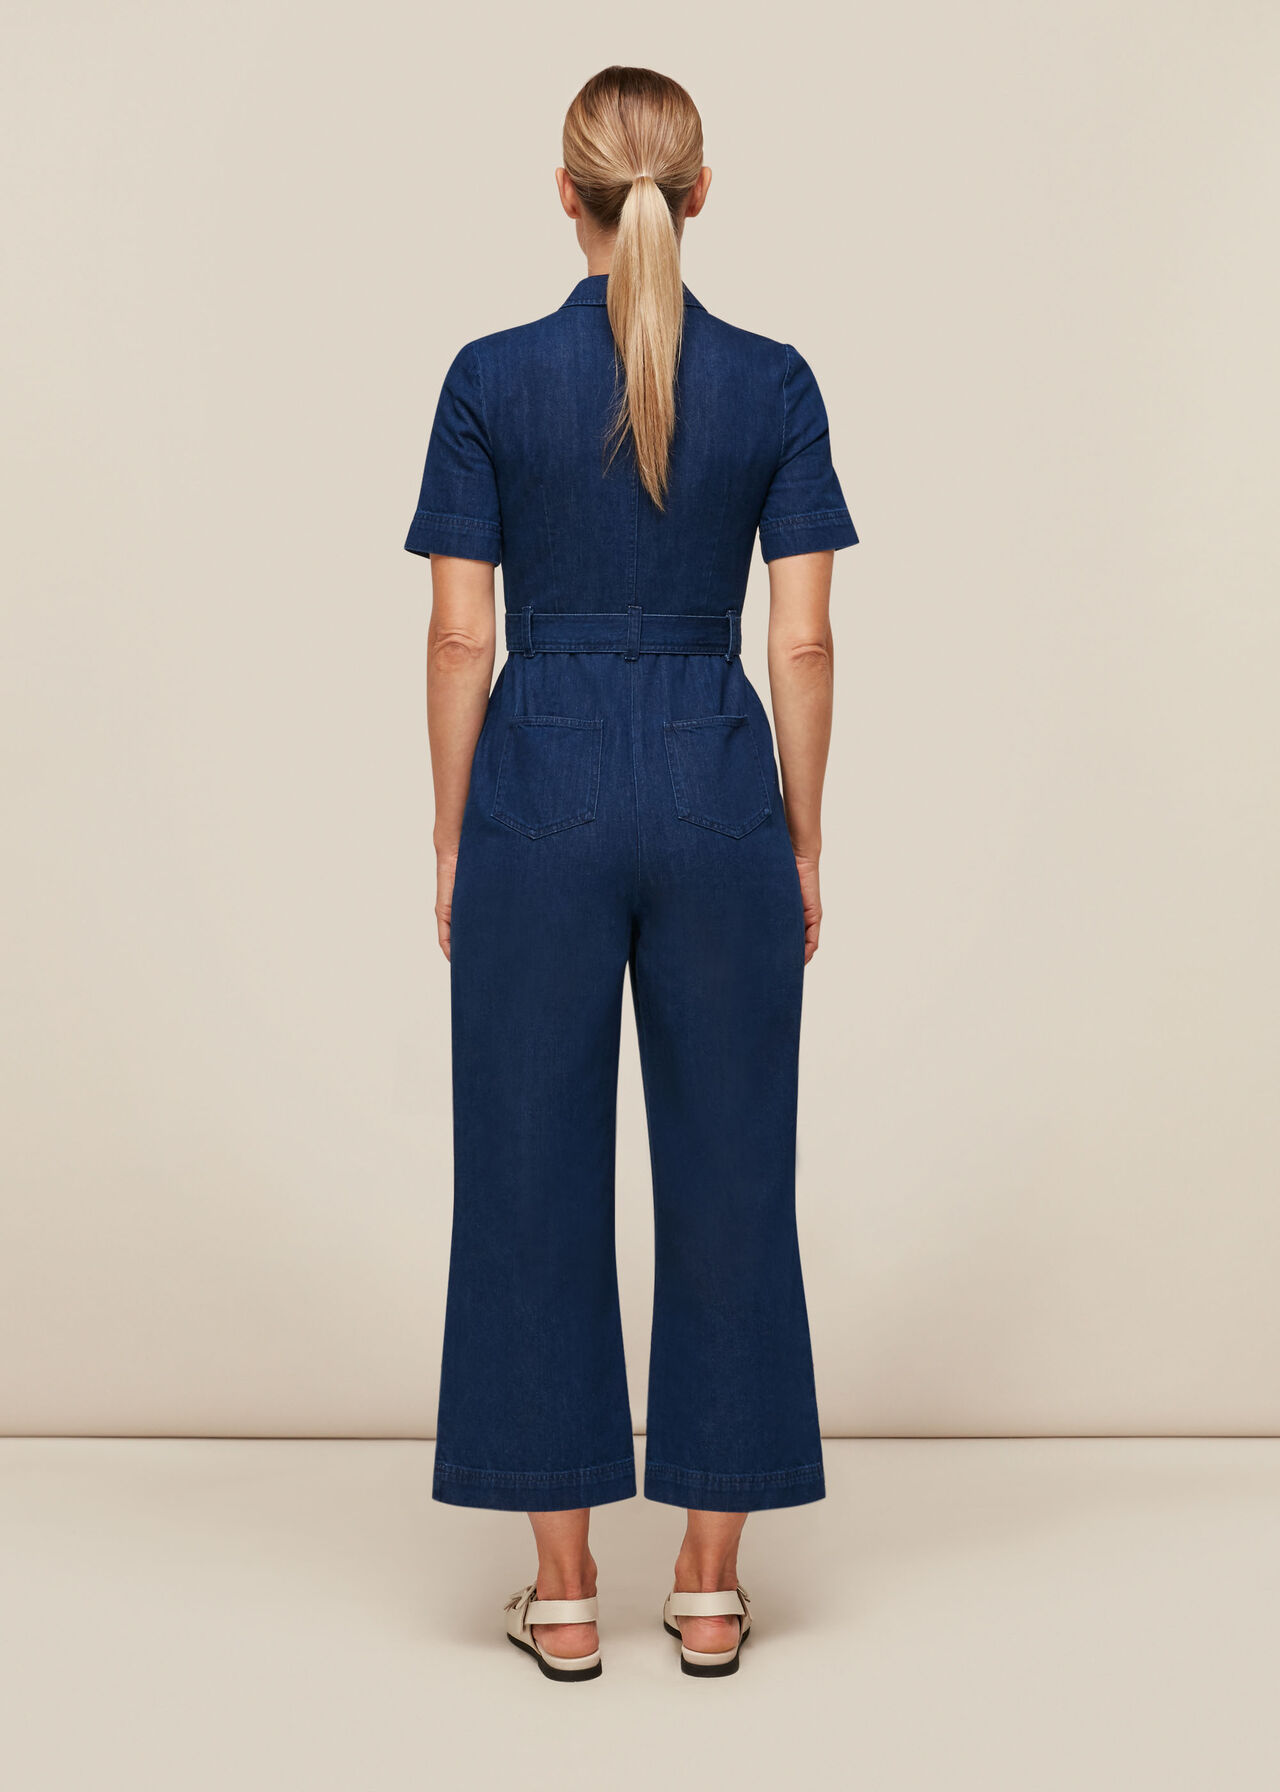 Tie Waist Denim Jumpsuit